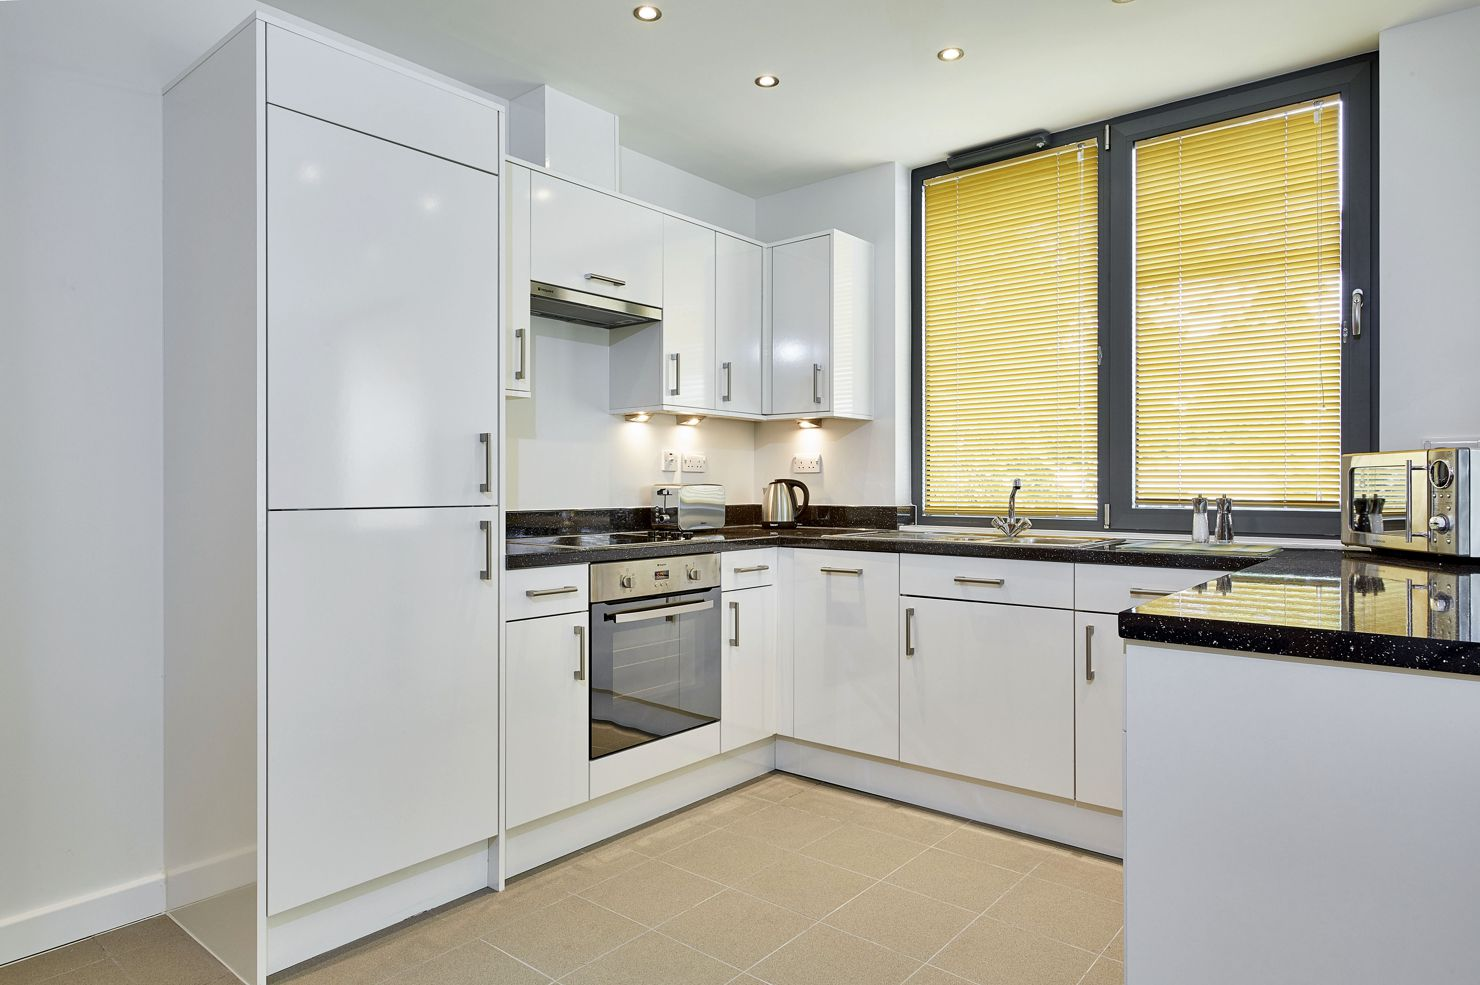 Colne-Lodge-Self-Catering-Accommodation-Staines---Serviced-Apartments-Staines-Upon-Thames-UK- -Urban-Stay